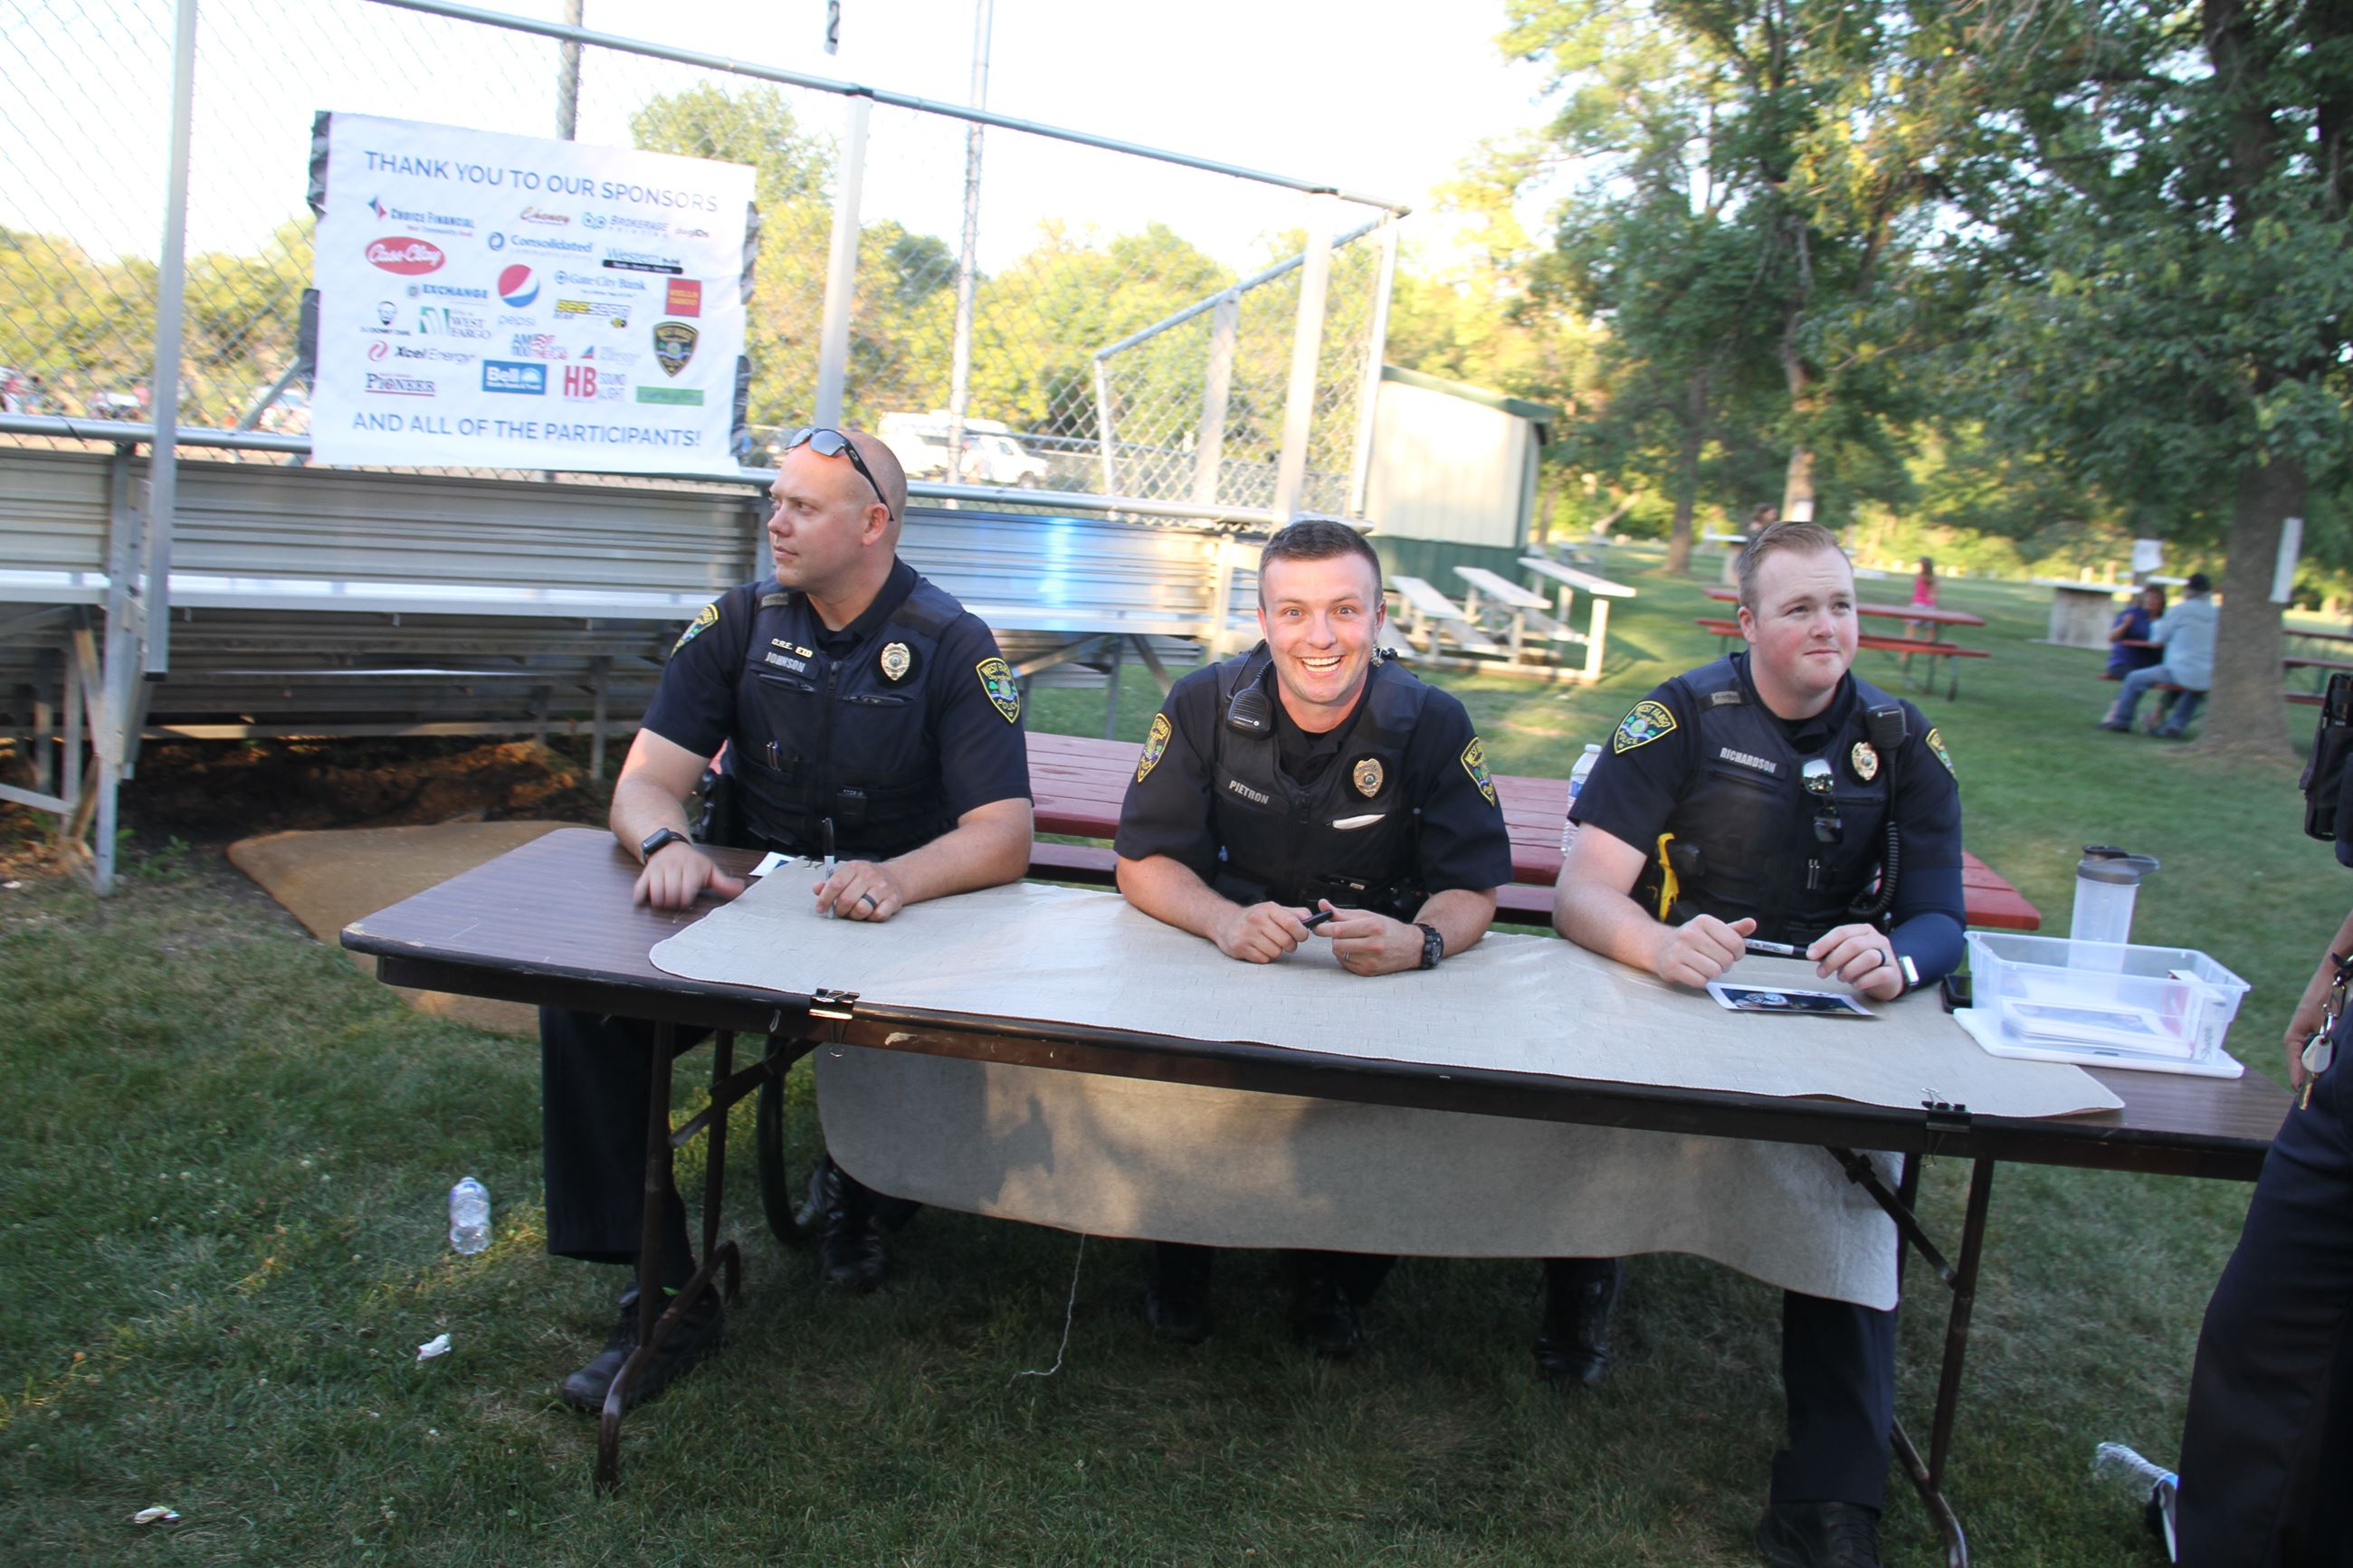 Officer Johnson, Pietron and Richardson sign autographs